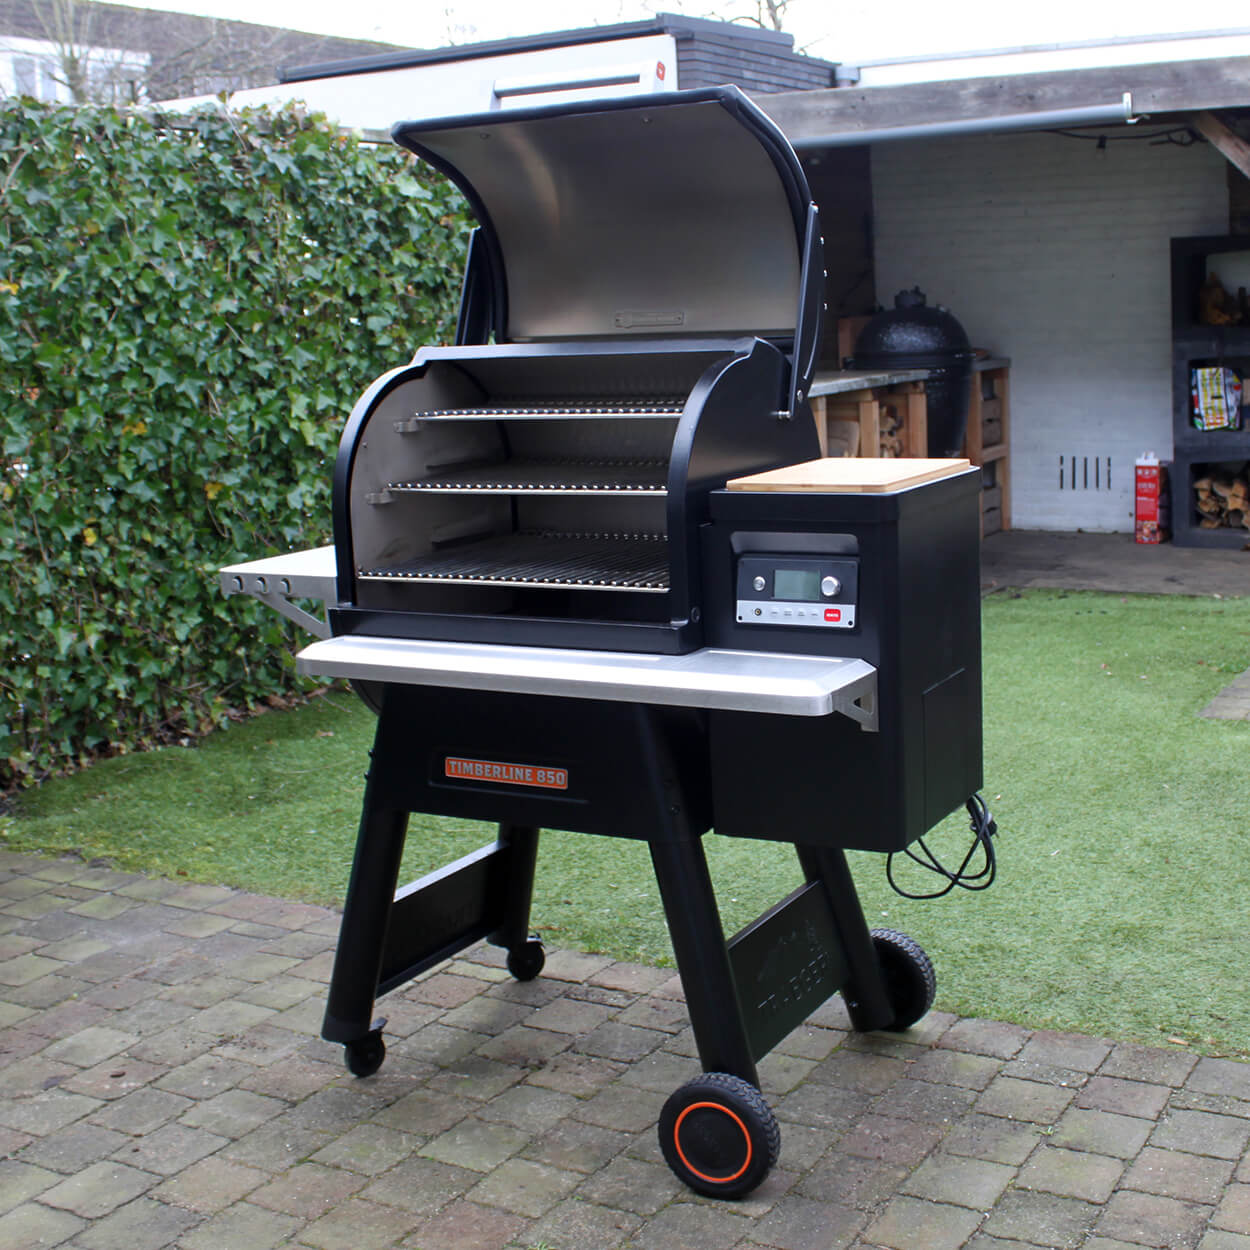 Review: Traeger Timberline 850 | BBQ Junkie